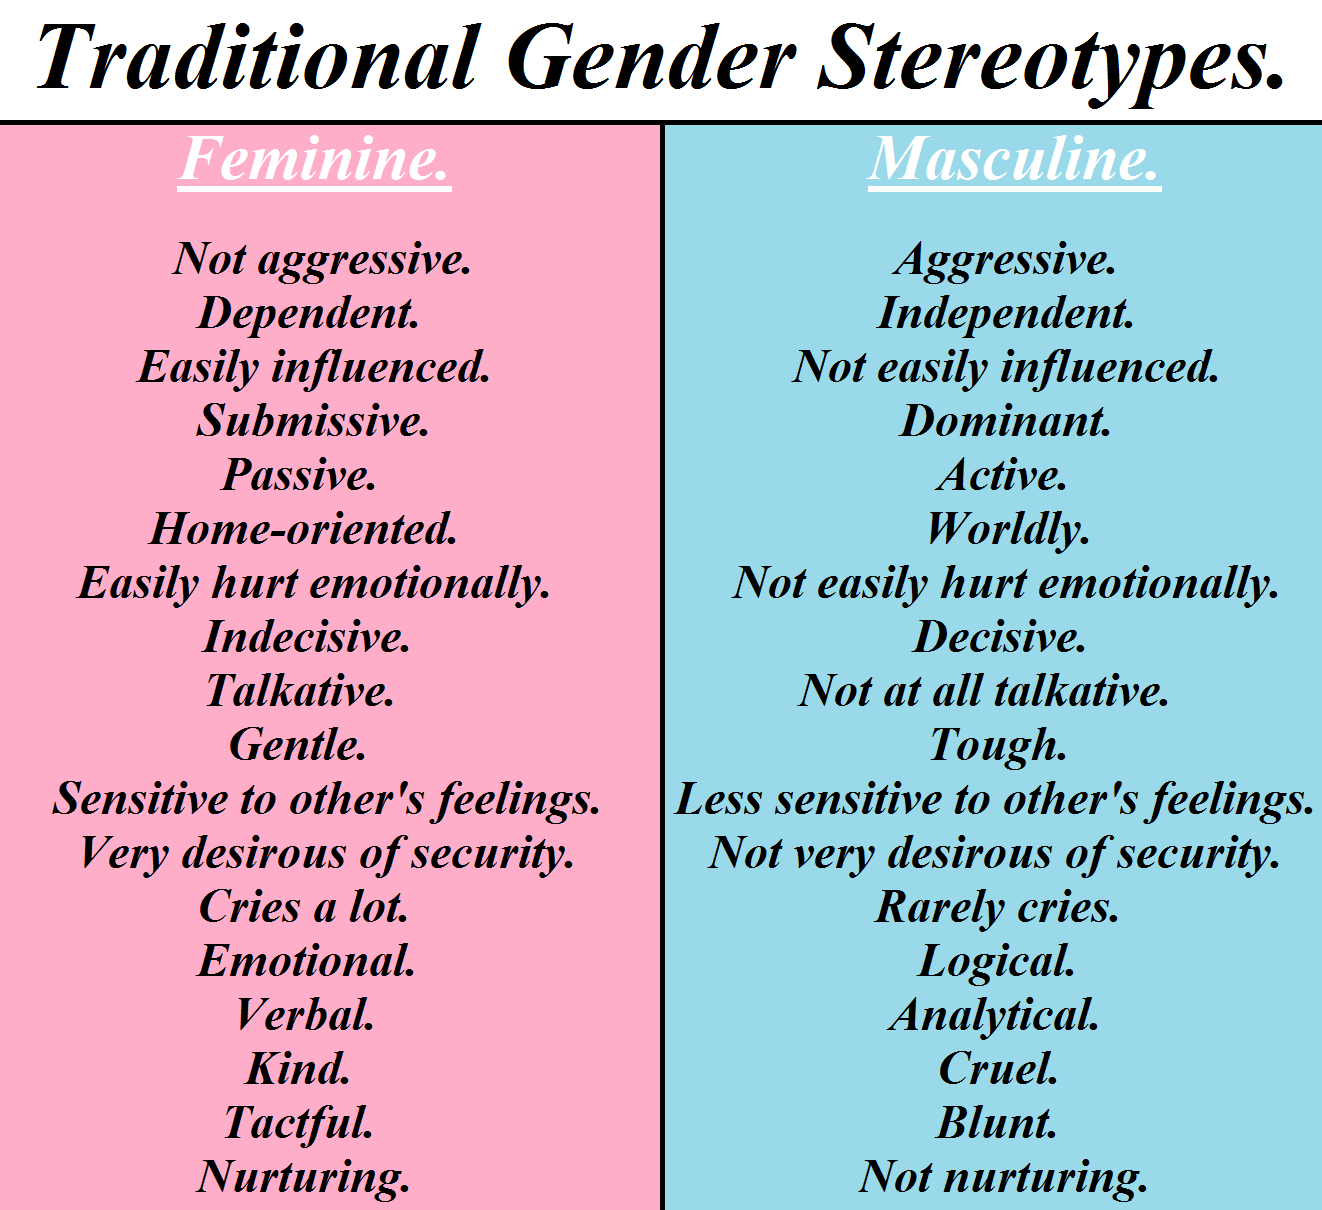 nurturing sex and gender gender stereotypes sophie moet nurturing sex and gender gender stereotypes traditional gender stereotypes by thearchosaurking d5e5ctd